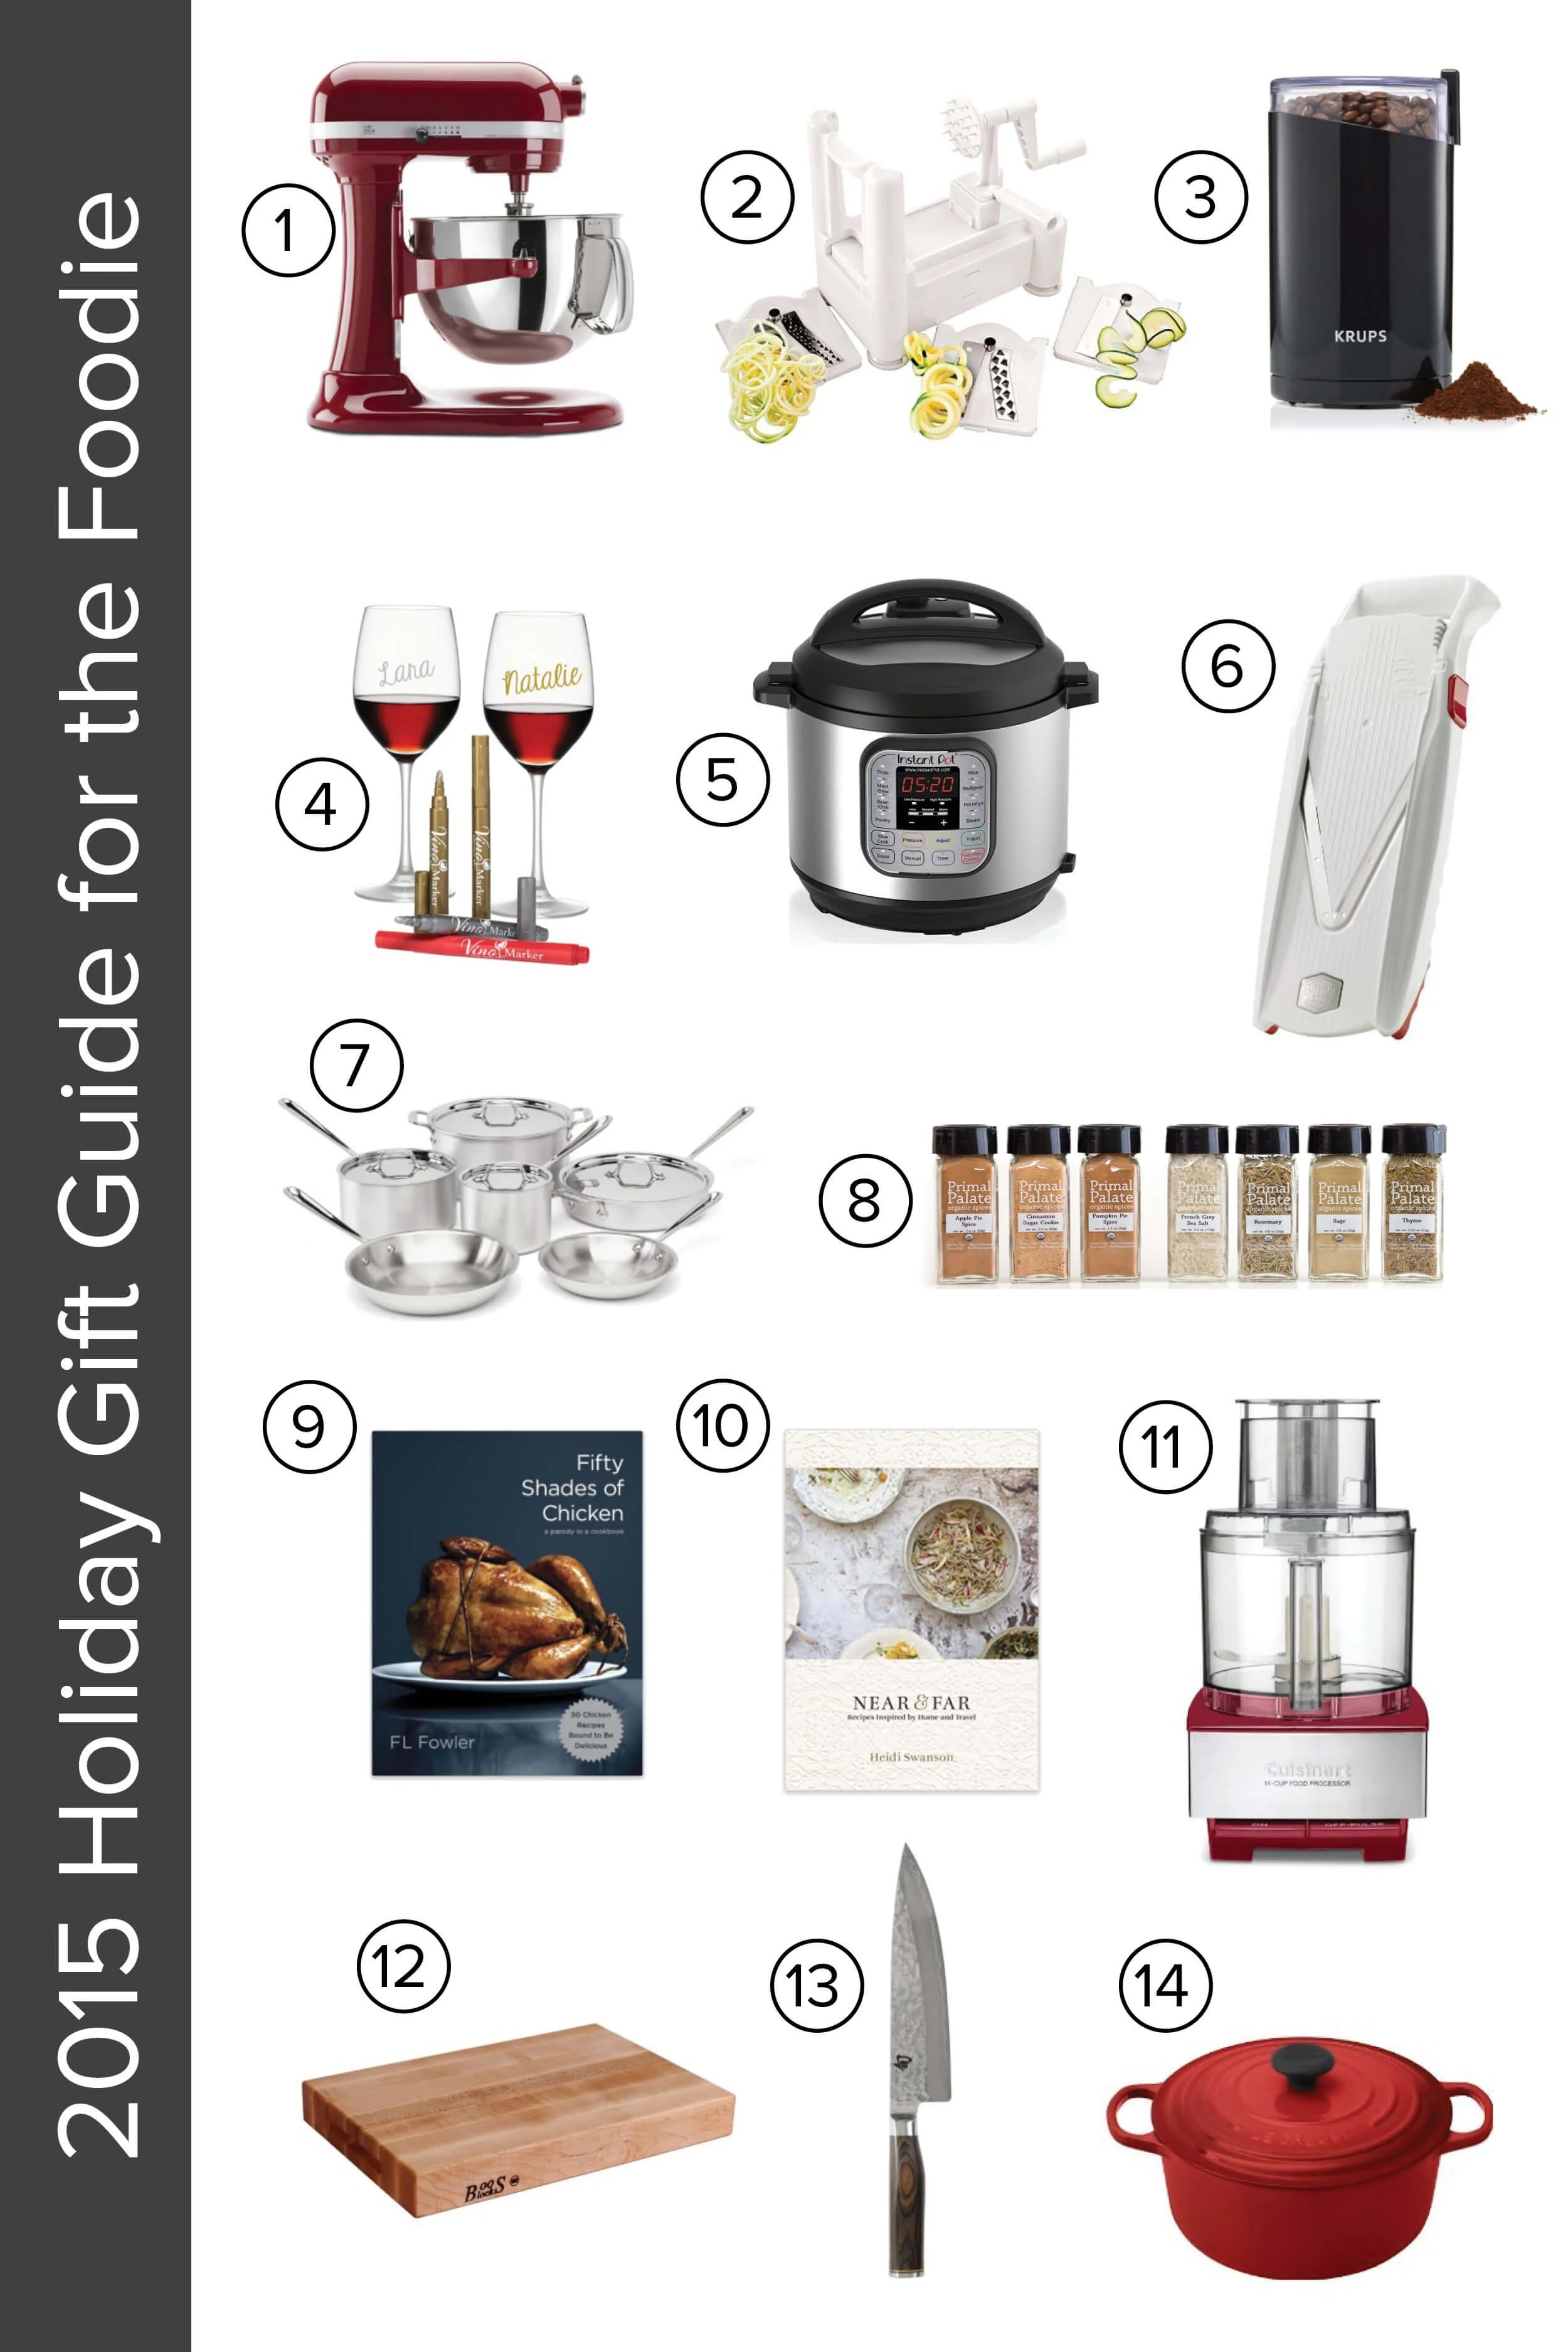 My 2015 holiday gift guide for the foodie in your life!